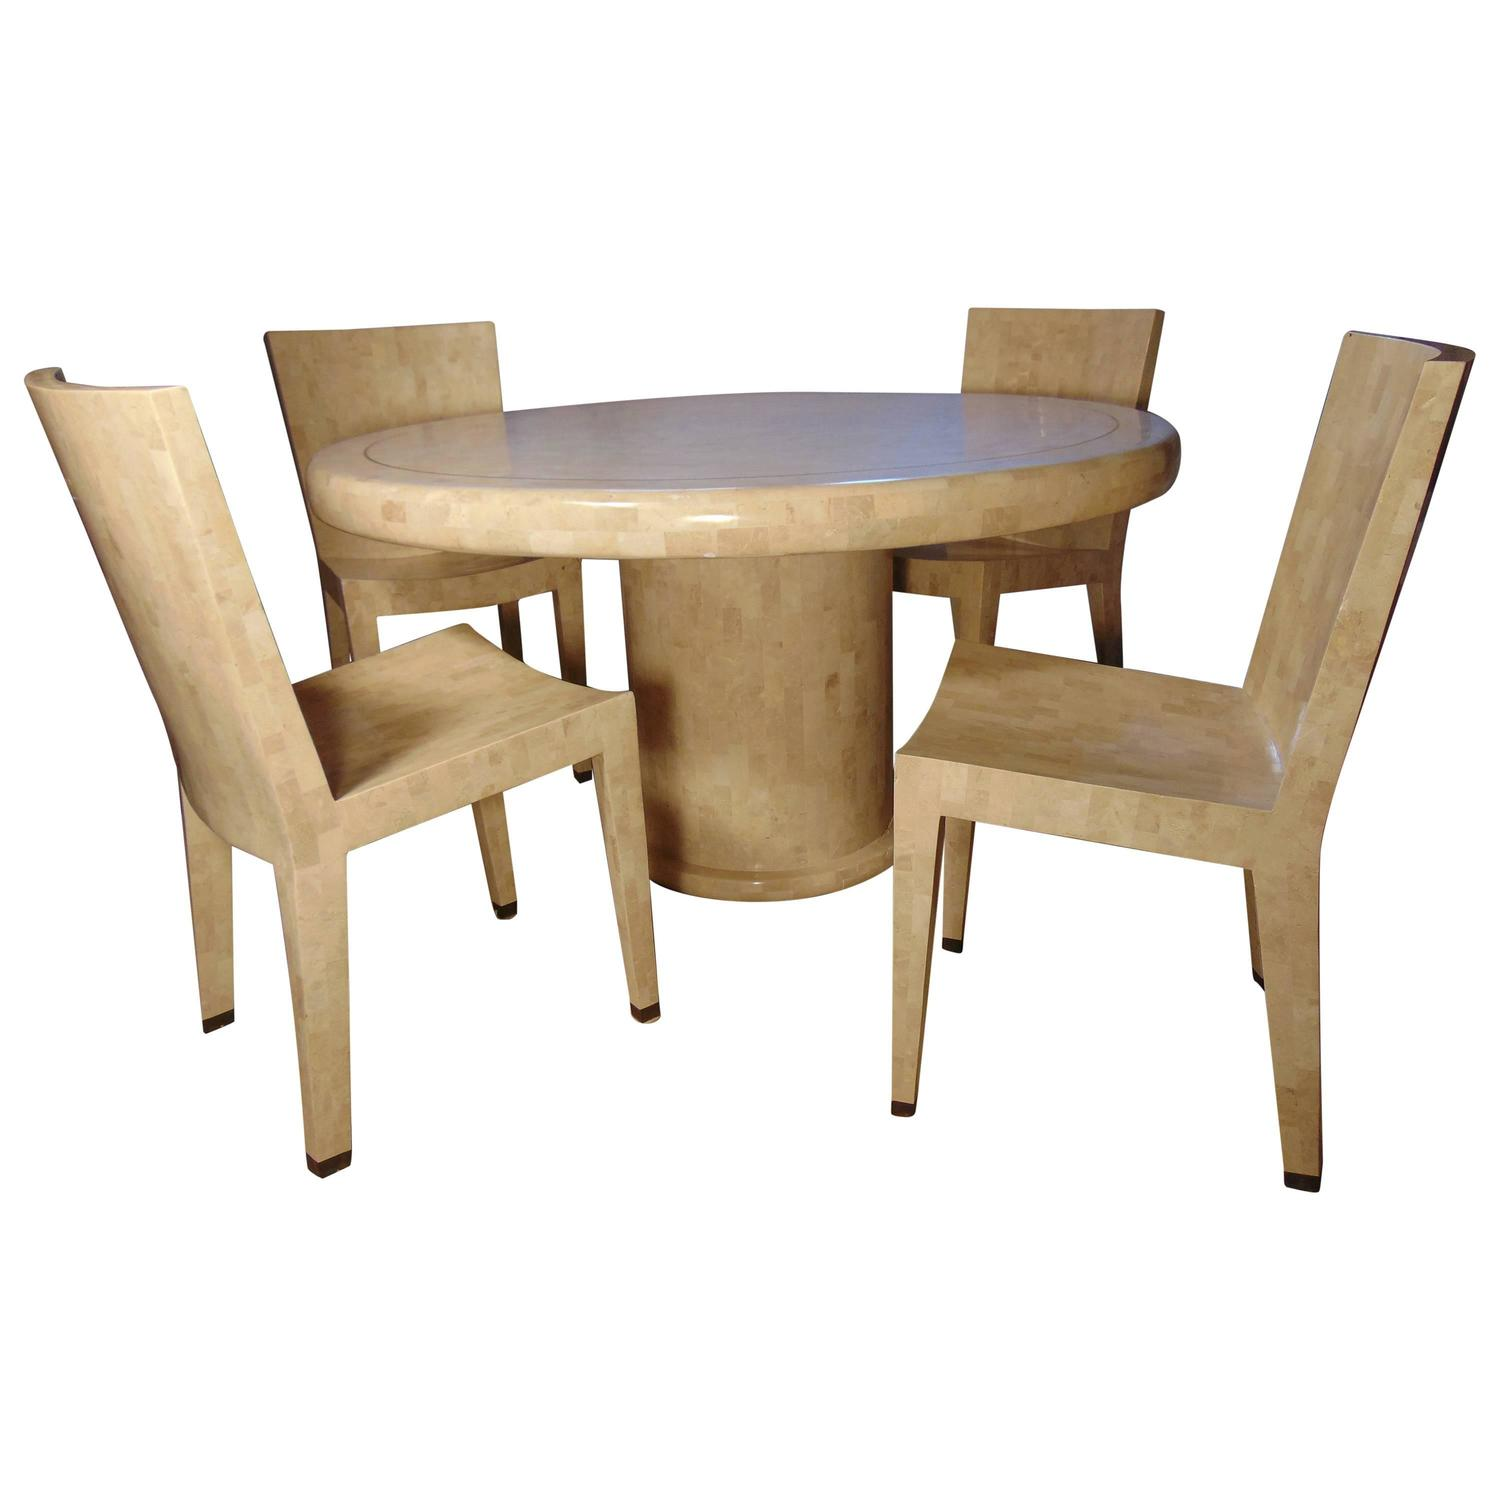 maitland smith dining chairs ikea chair poang tessellated marble table and four by